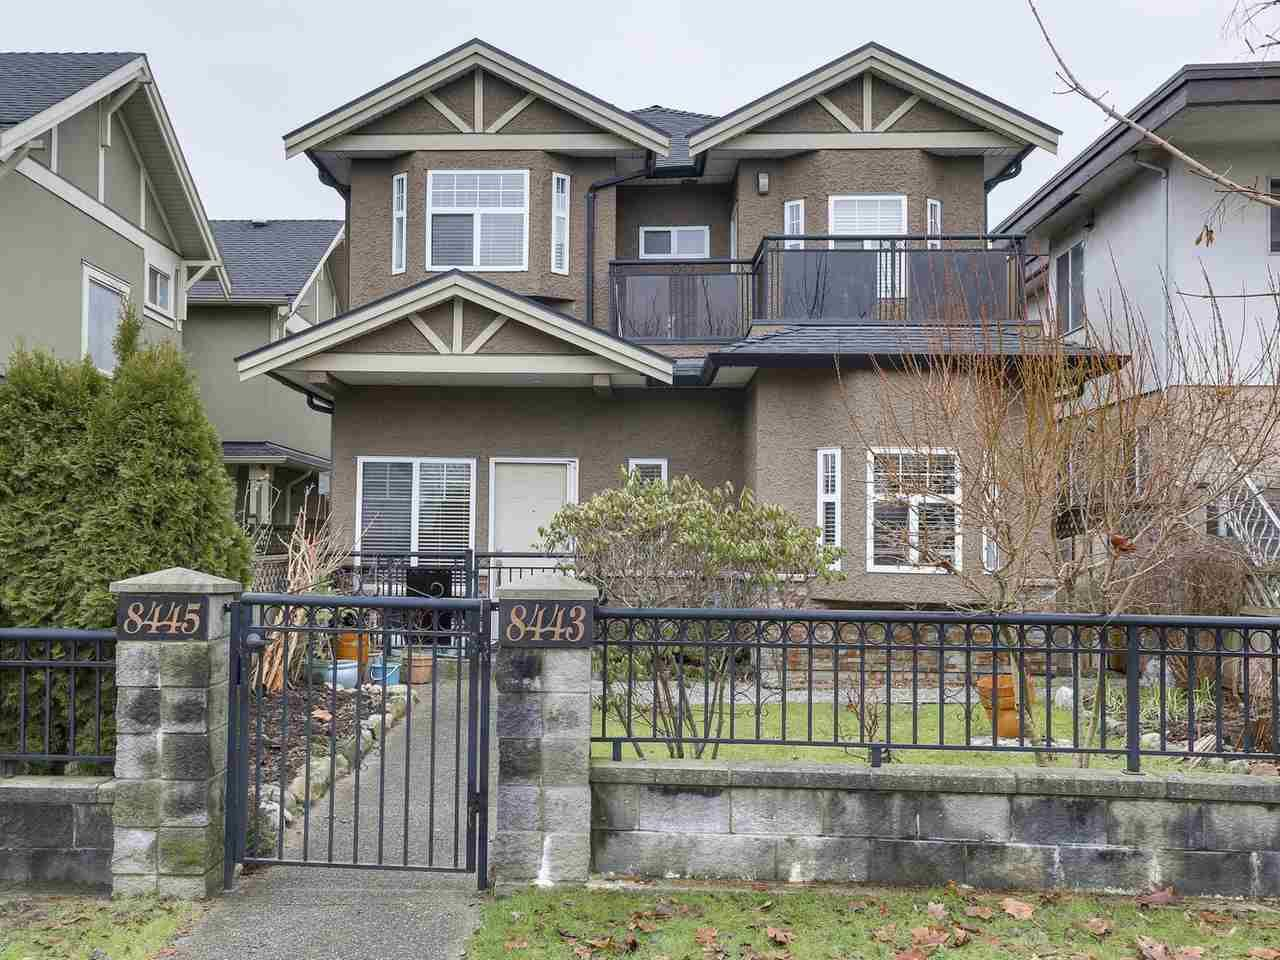 """Main Photo: 8445 FREMLIN Street in Vancouver: Marpole 1/2 Duplex for sale in """"MARPOLE"""" (Vancouver West)  : MLS®# R2135044"""